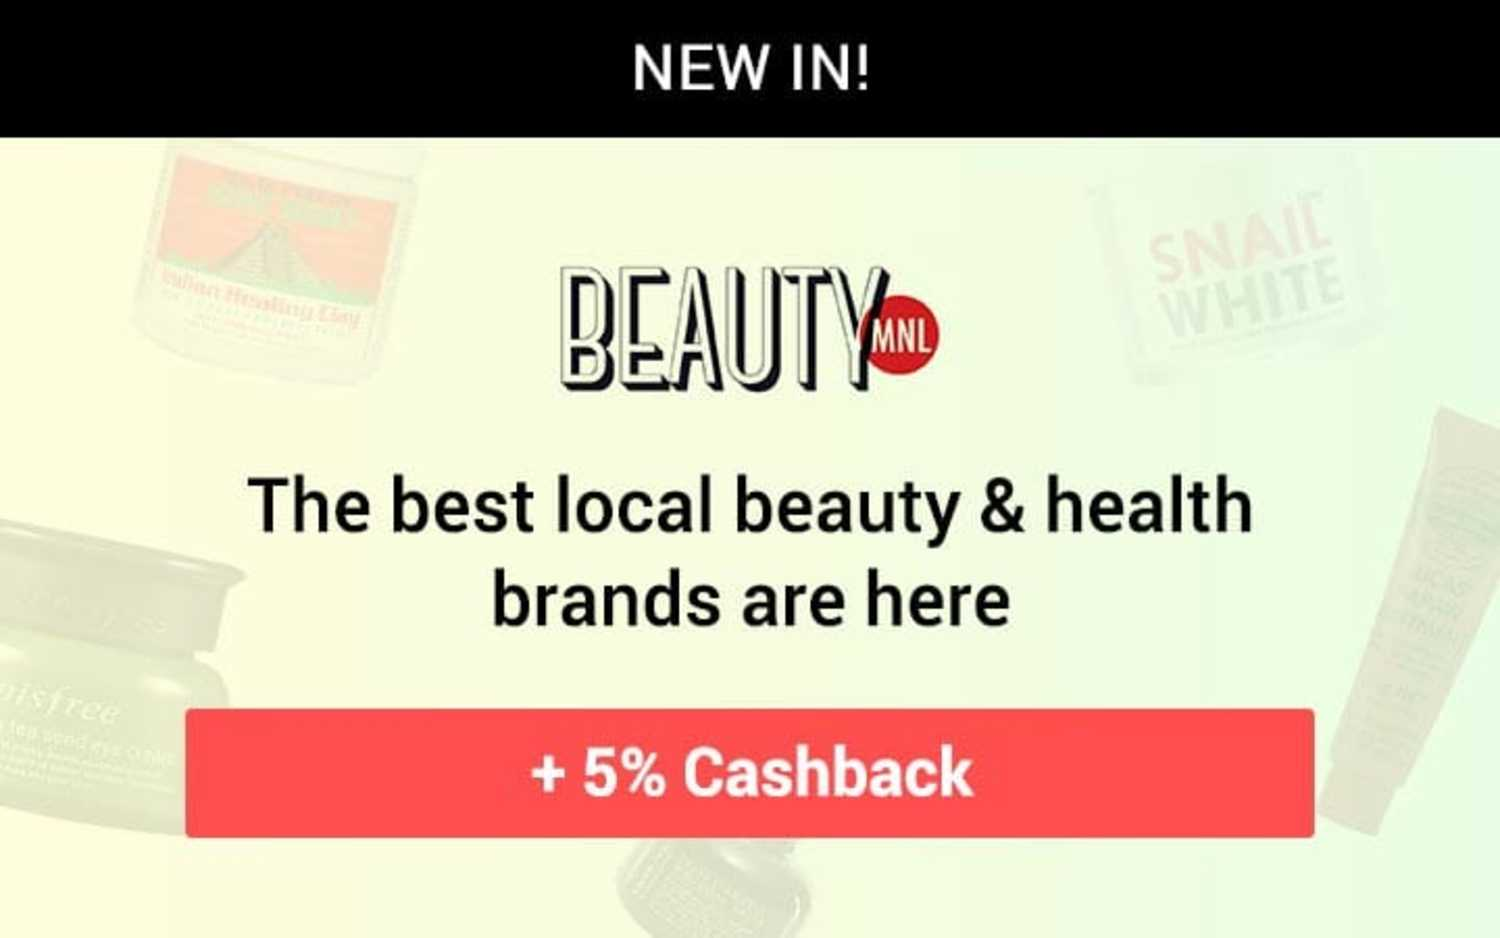 New in: BeautyMNL The best local beauty & health brands are here + 5% Cashback